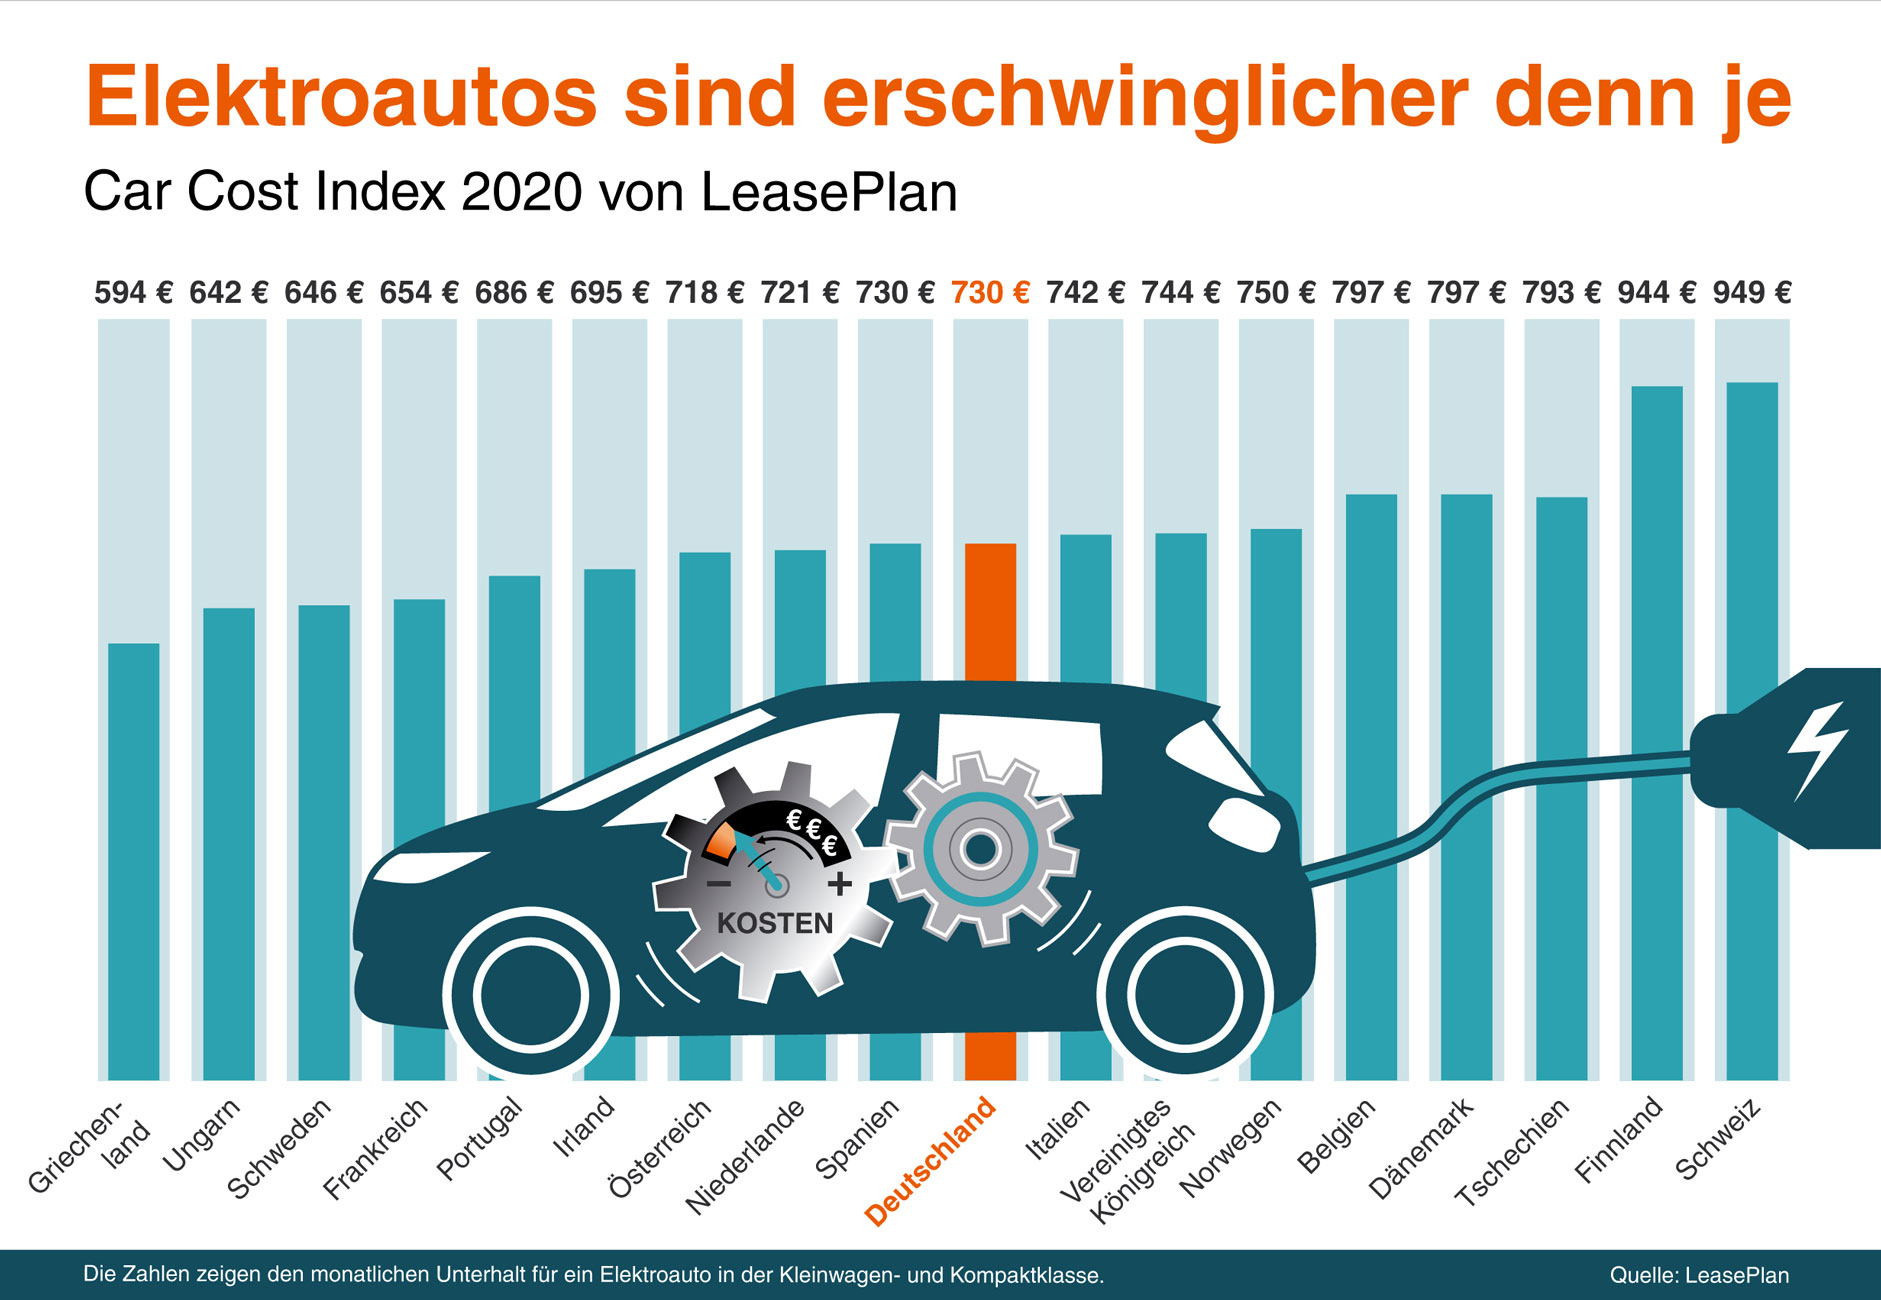 car-cost-index_LeasePlan-2020